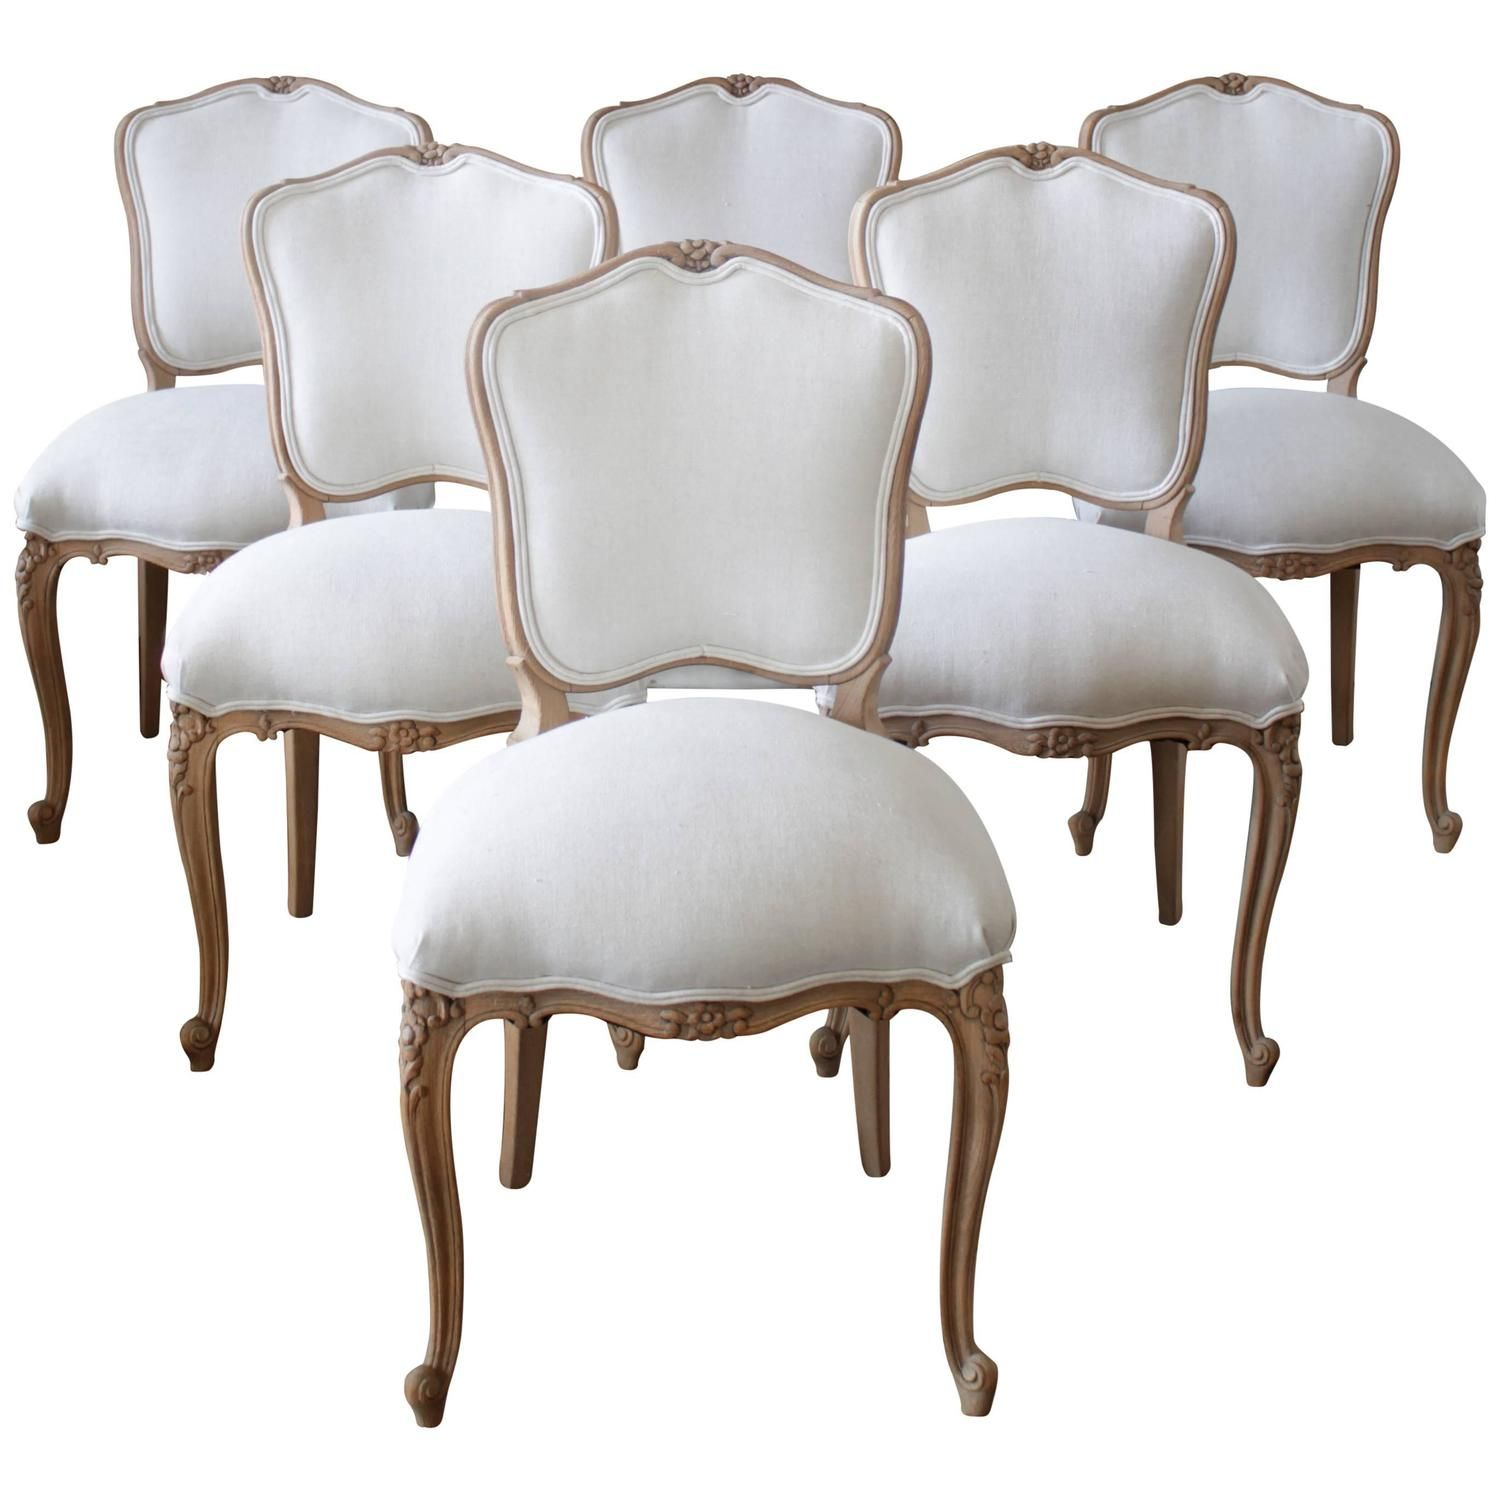 Louis Xv Style French Country Dining Chairs 1 French Country